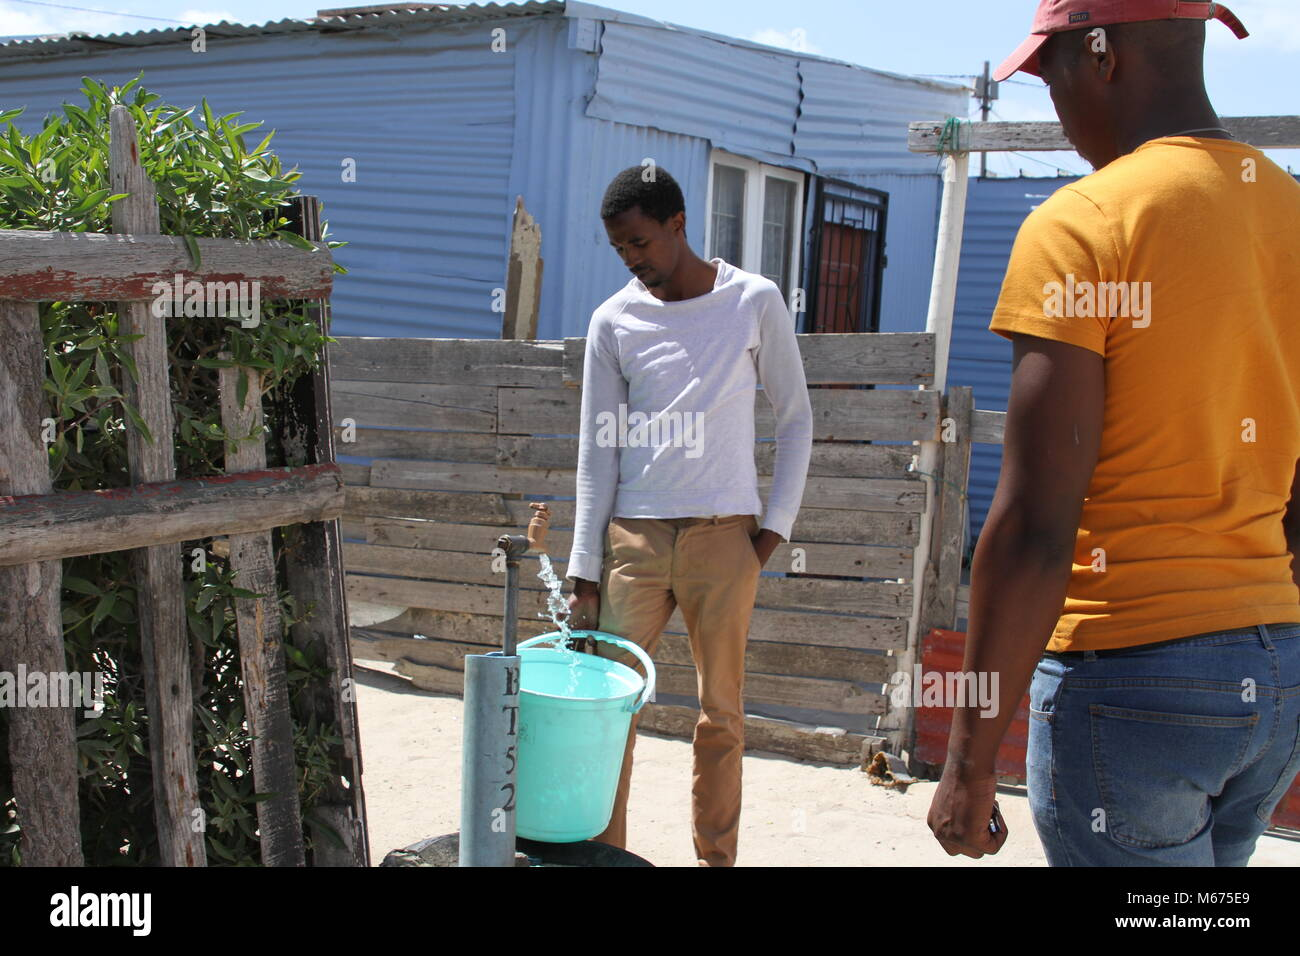 09 February 2018, South Africa, Cape Town, Khayelitsha: Anele Goba, 34, who lives in the Khayelitsha slum area outside - Stock Image